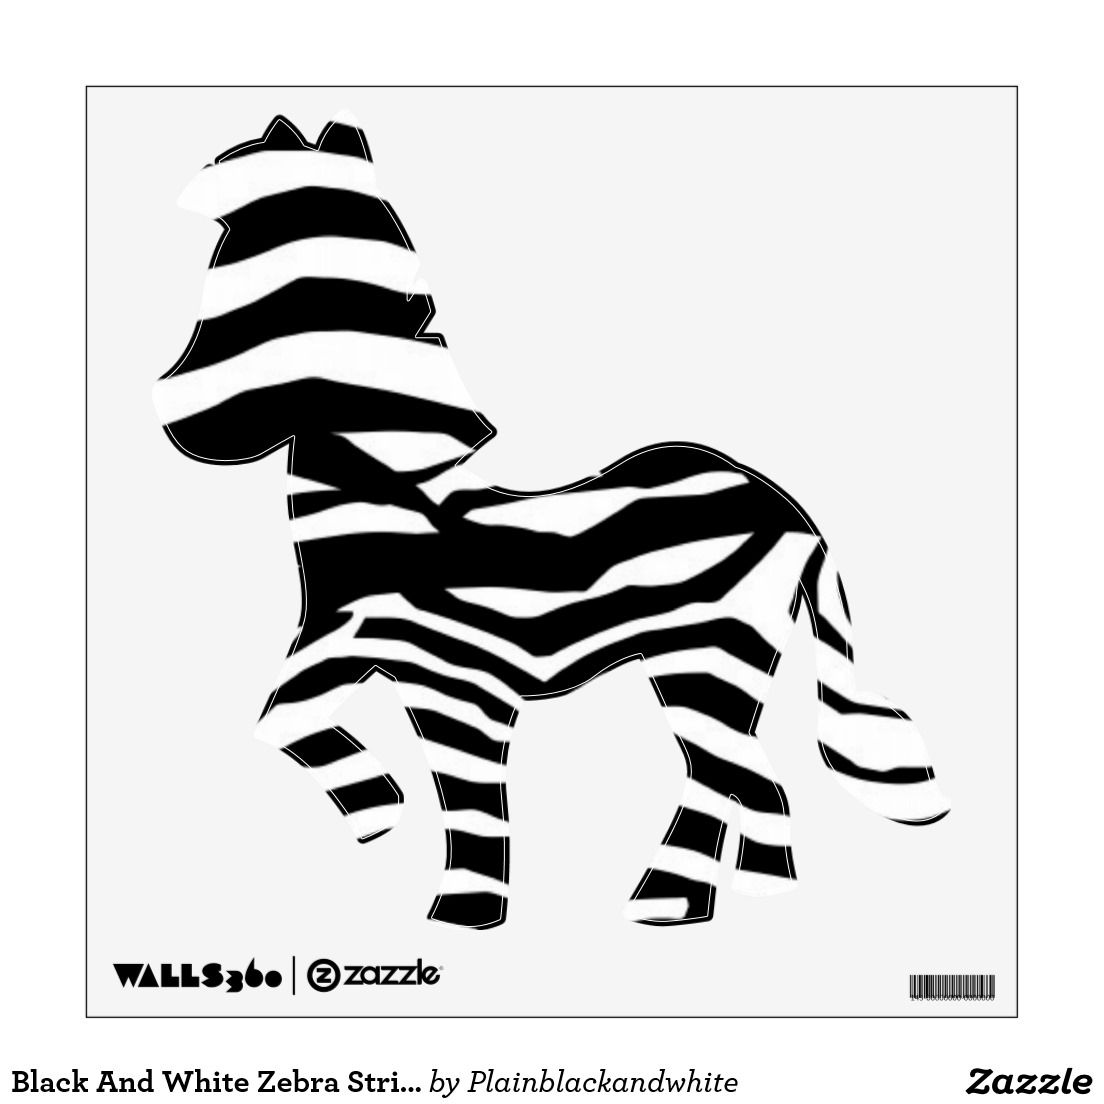 Black And White Zebra Stripes Wall Decal Deluxephotos Wall - Zebra stripe wall decals